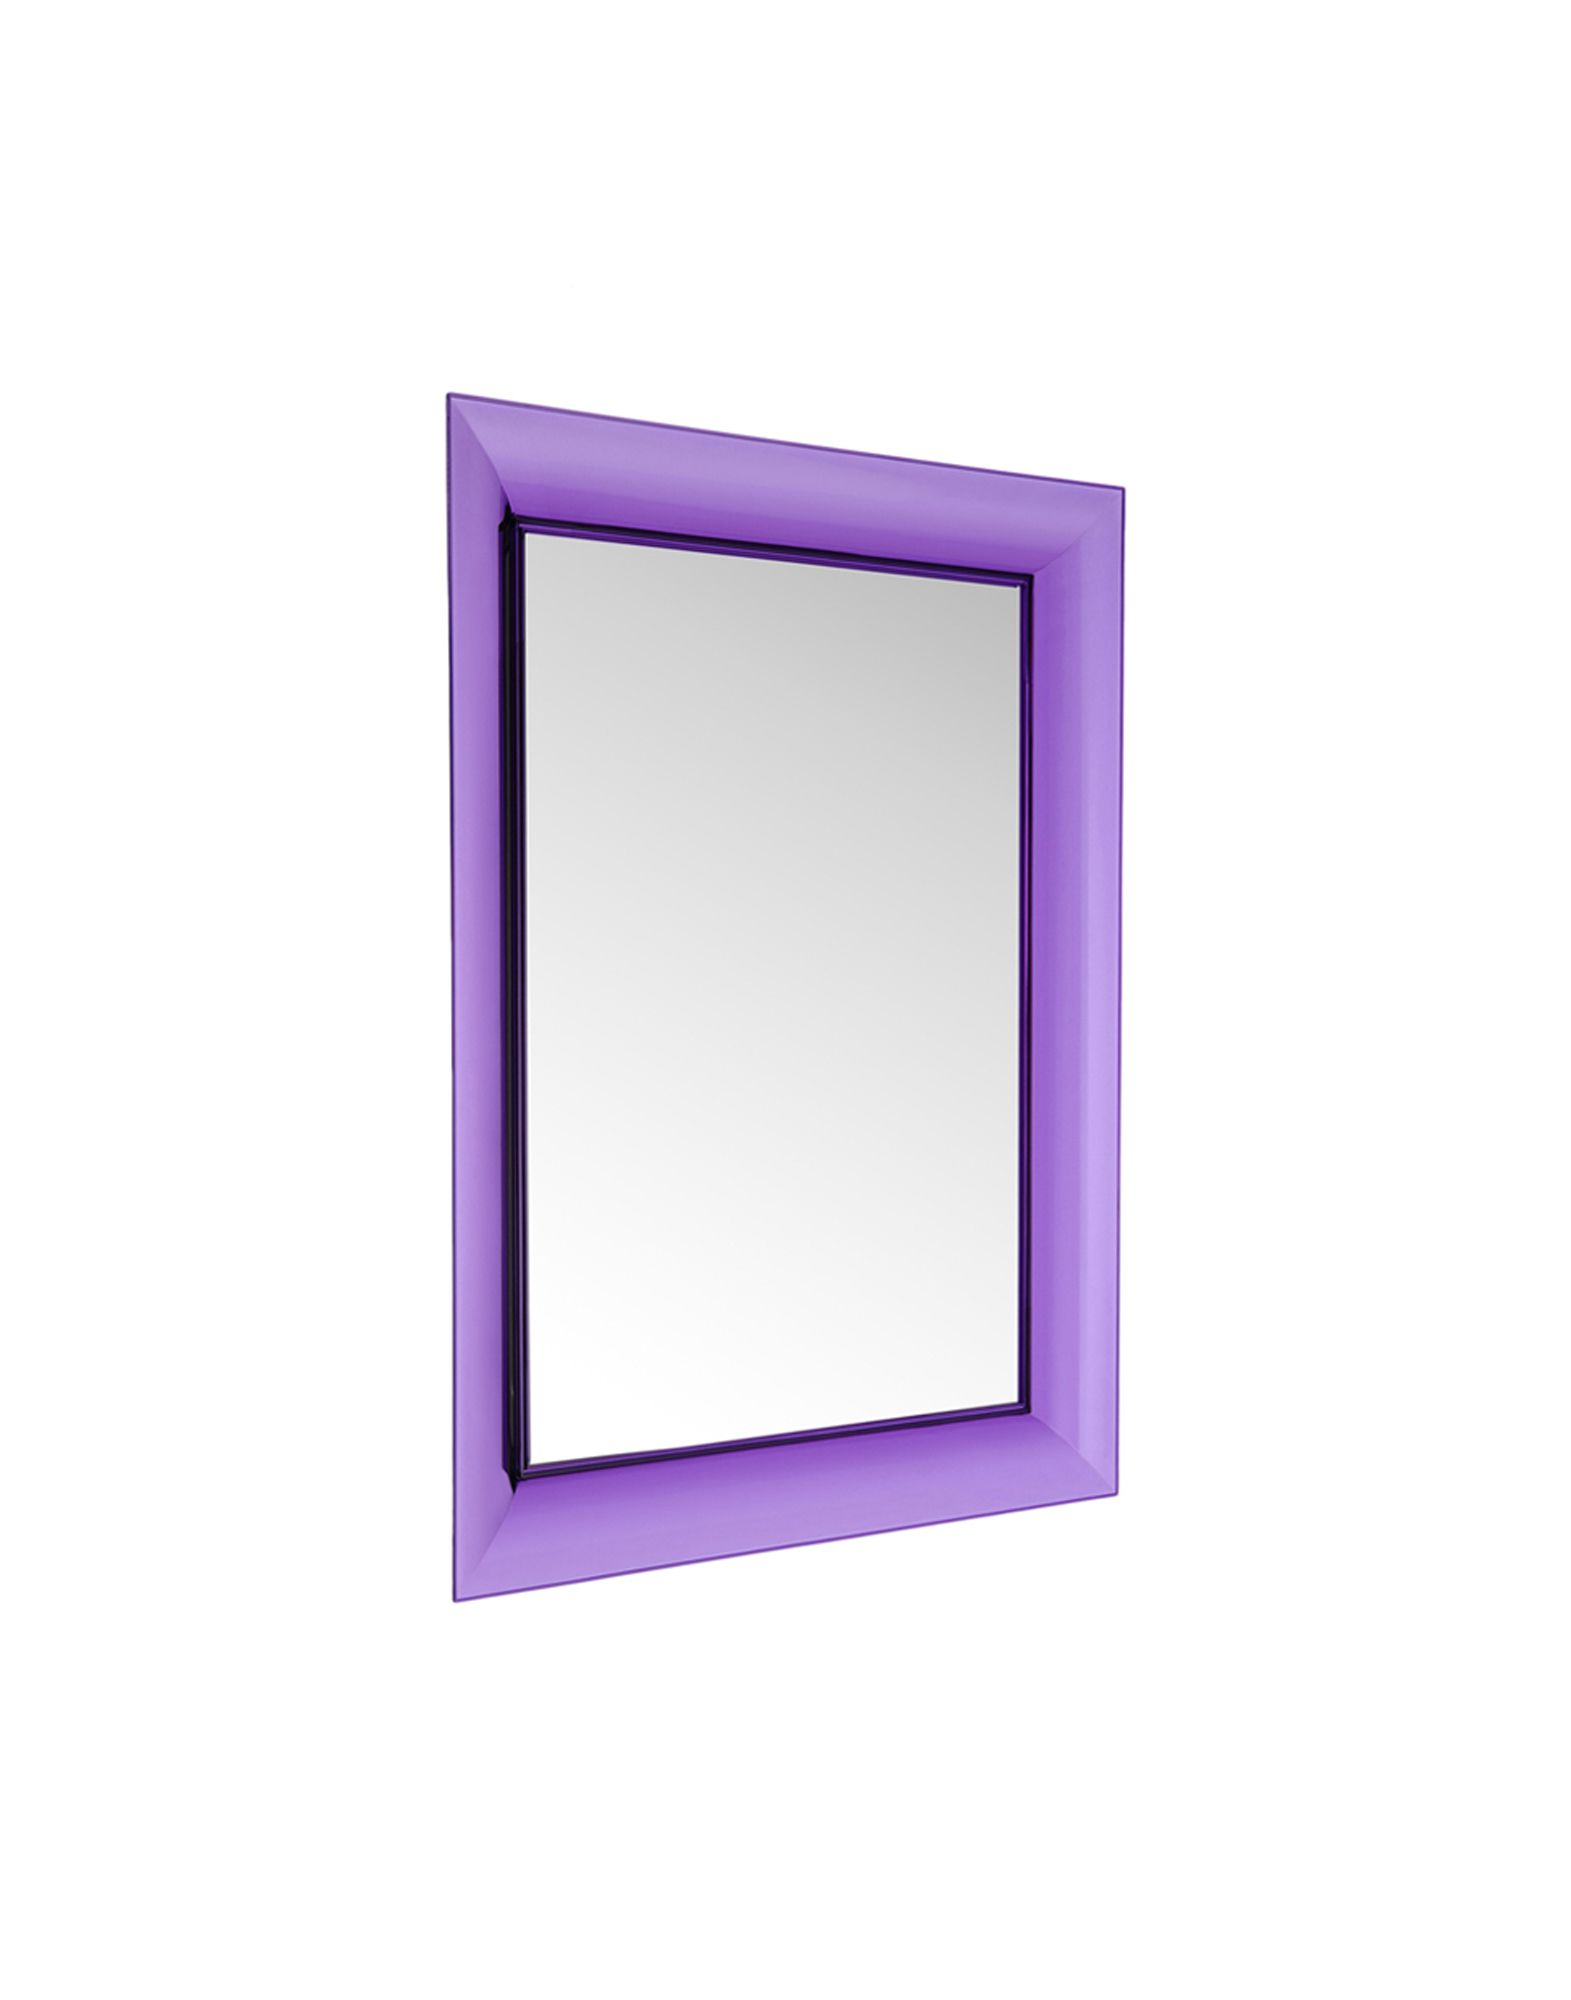 Kartell mirror francois ghost violet mirrors for Miroir francois ghost kartell